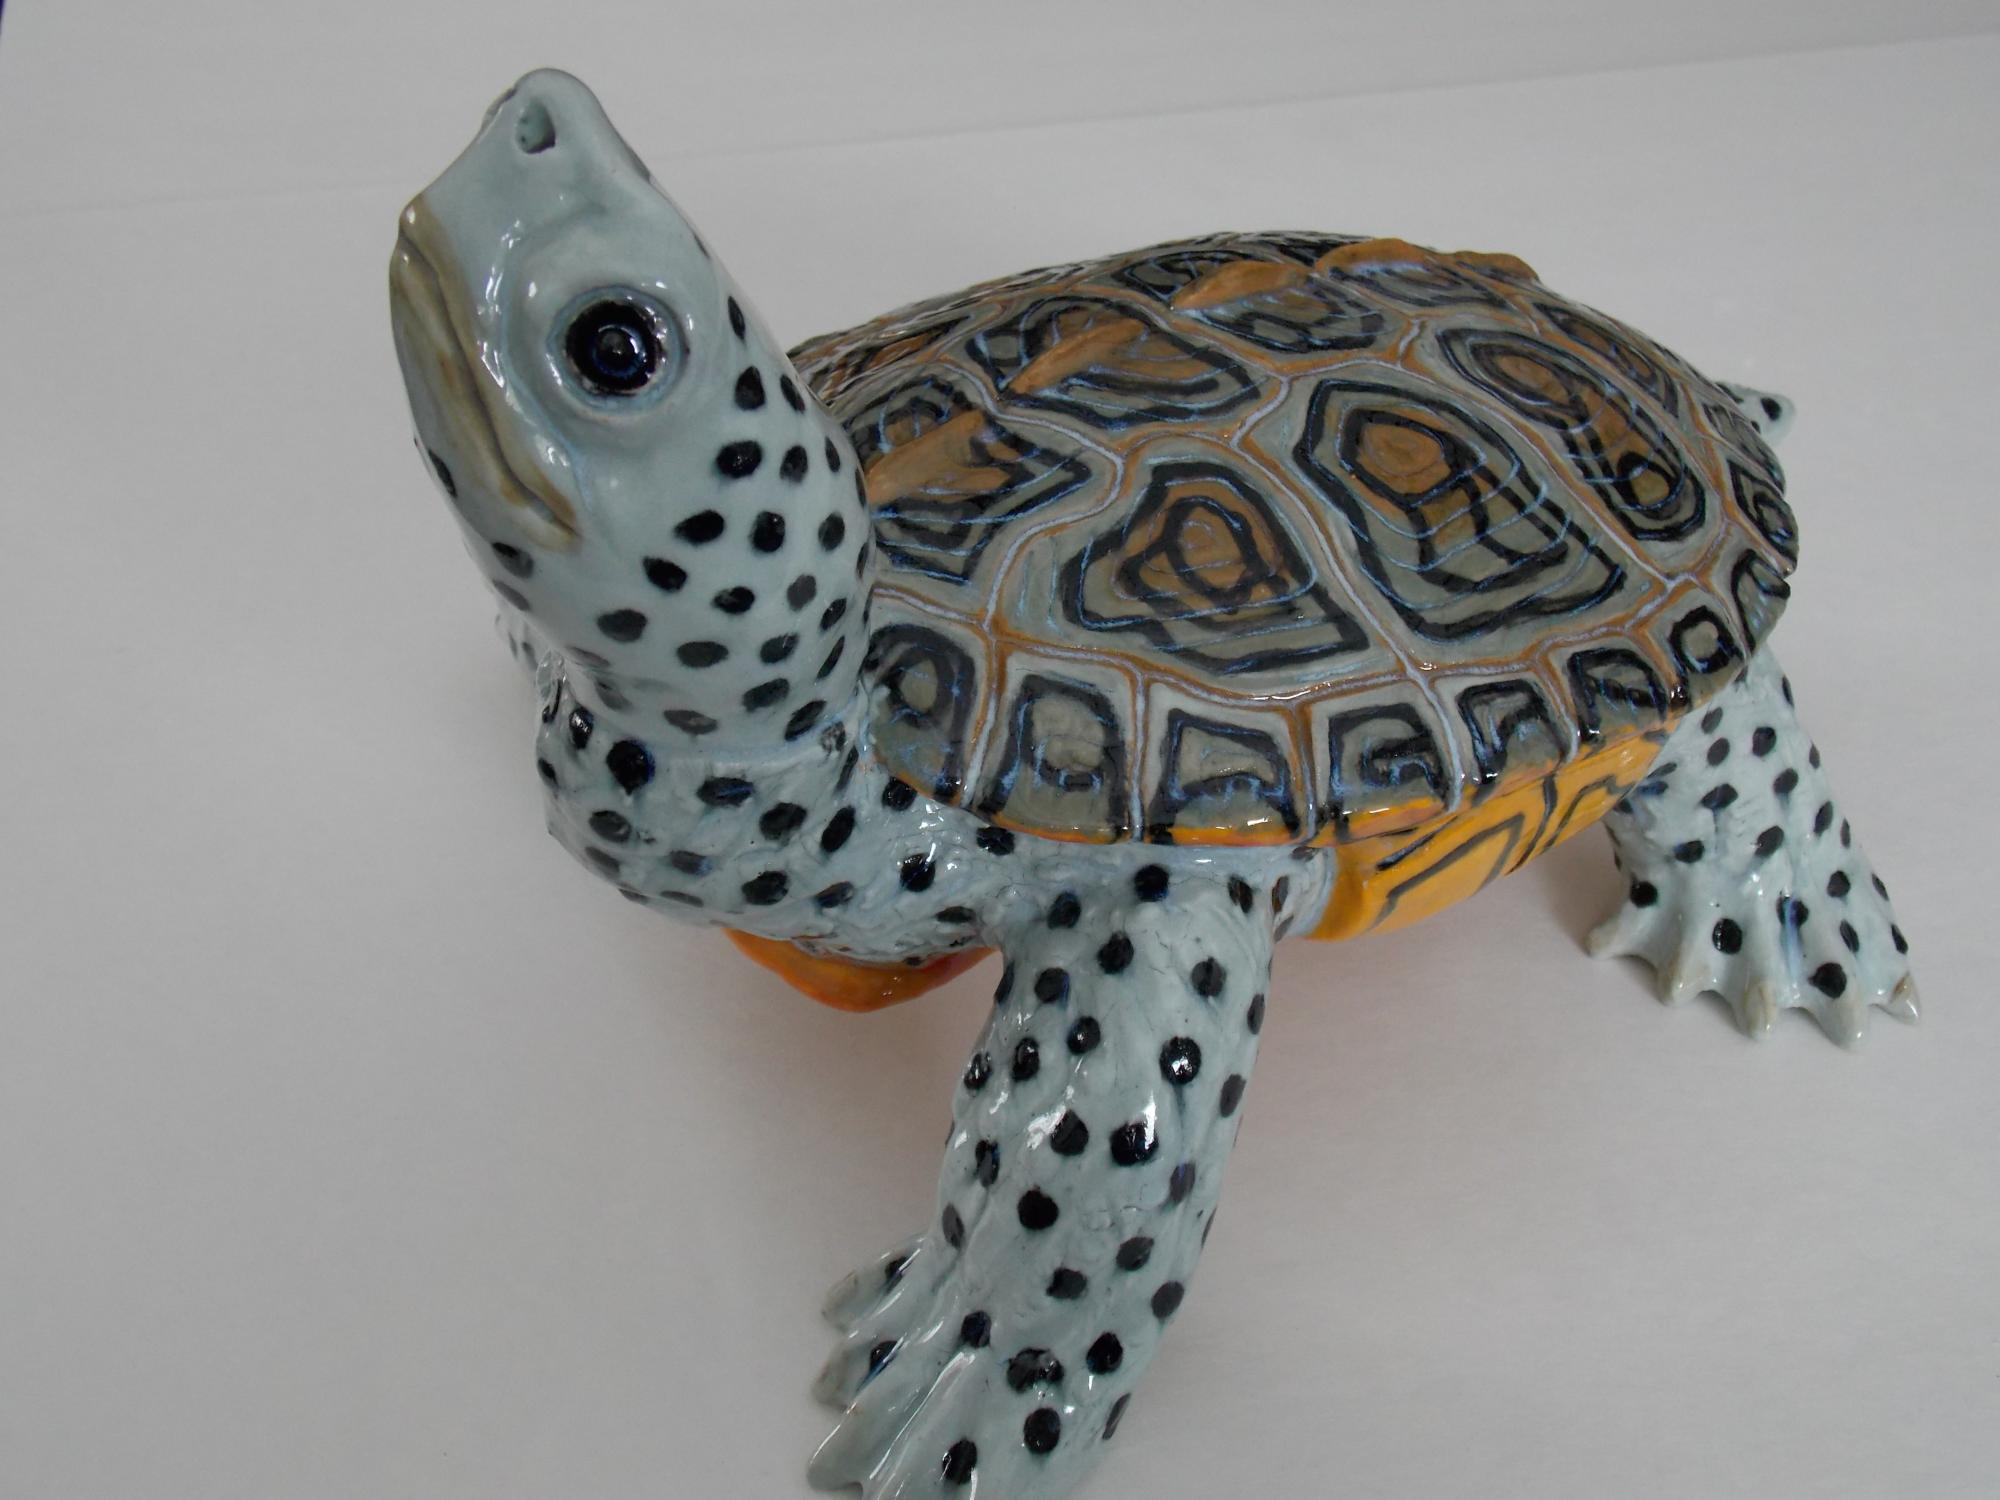 Malaclemys_terrapin_3__Muhich_2015__ceramic_cone_6__12_x_8_x_7_inches.JPG